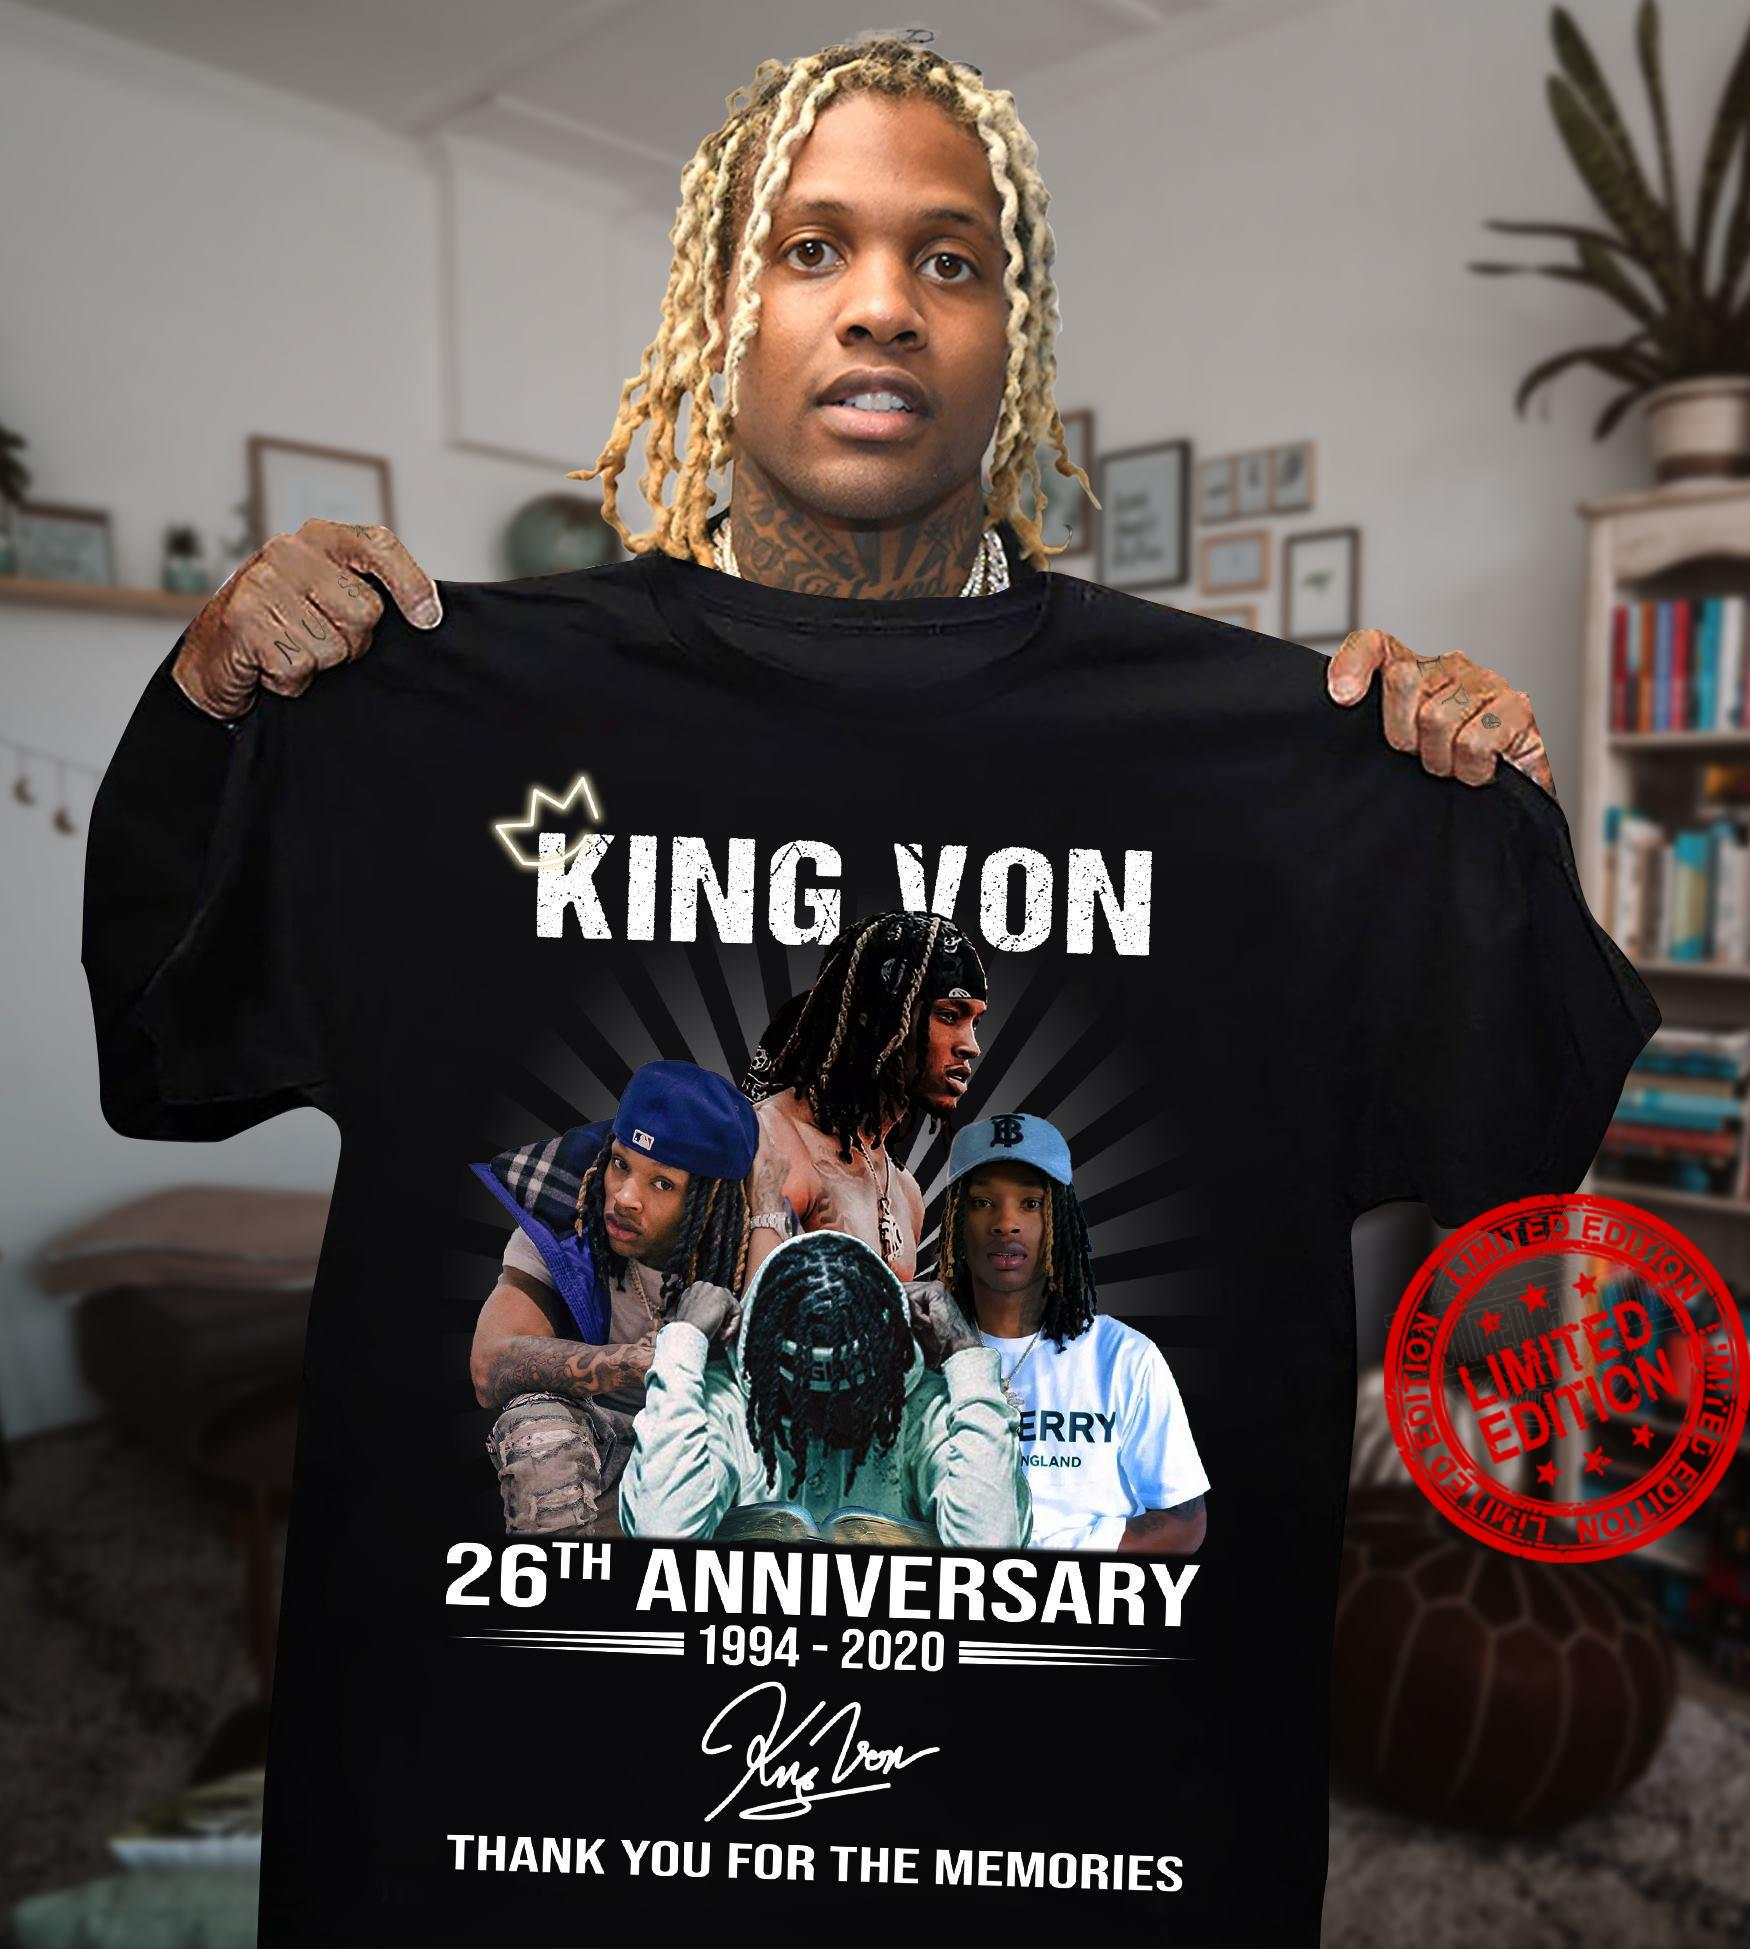 King Von 26th Anniversary 1994-2020 Thank You For The Memories Shirt